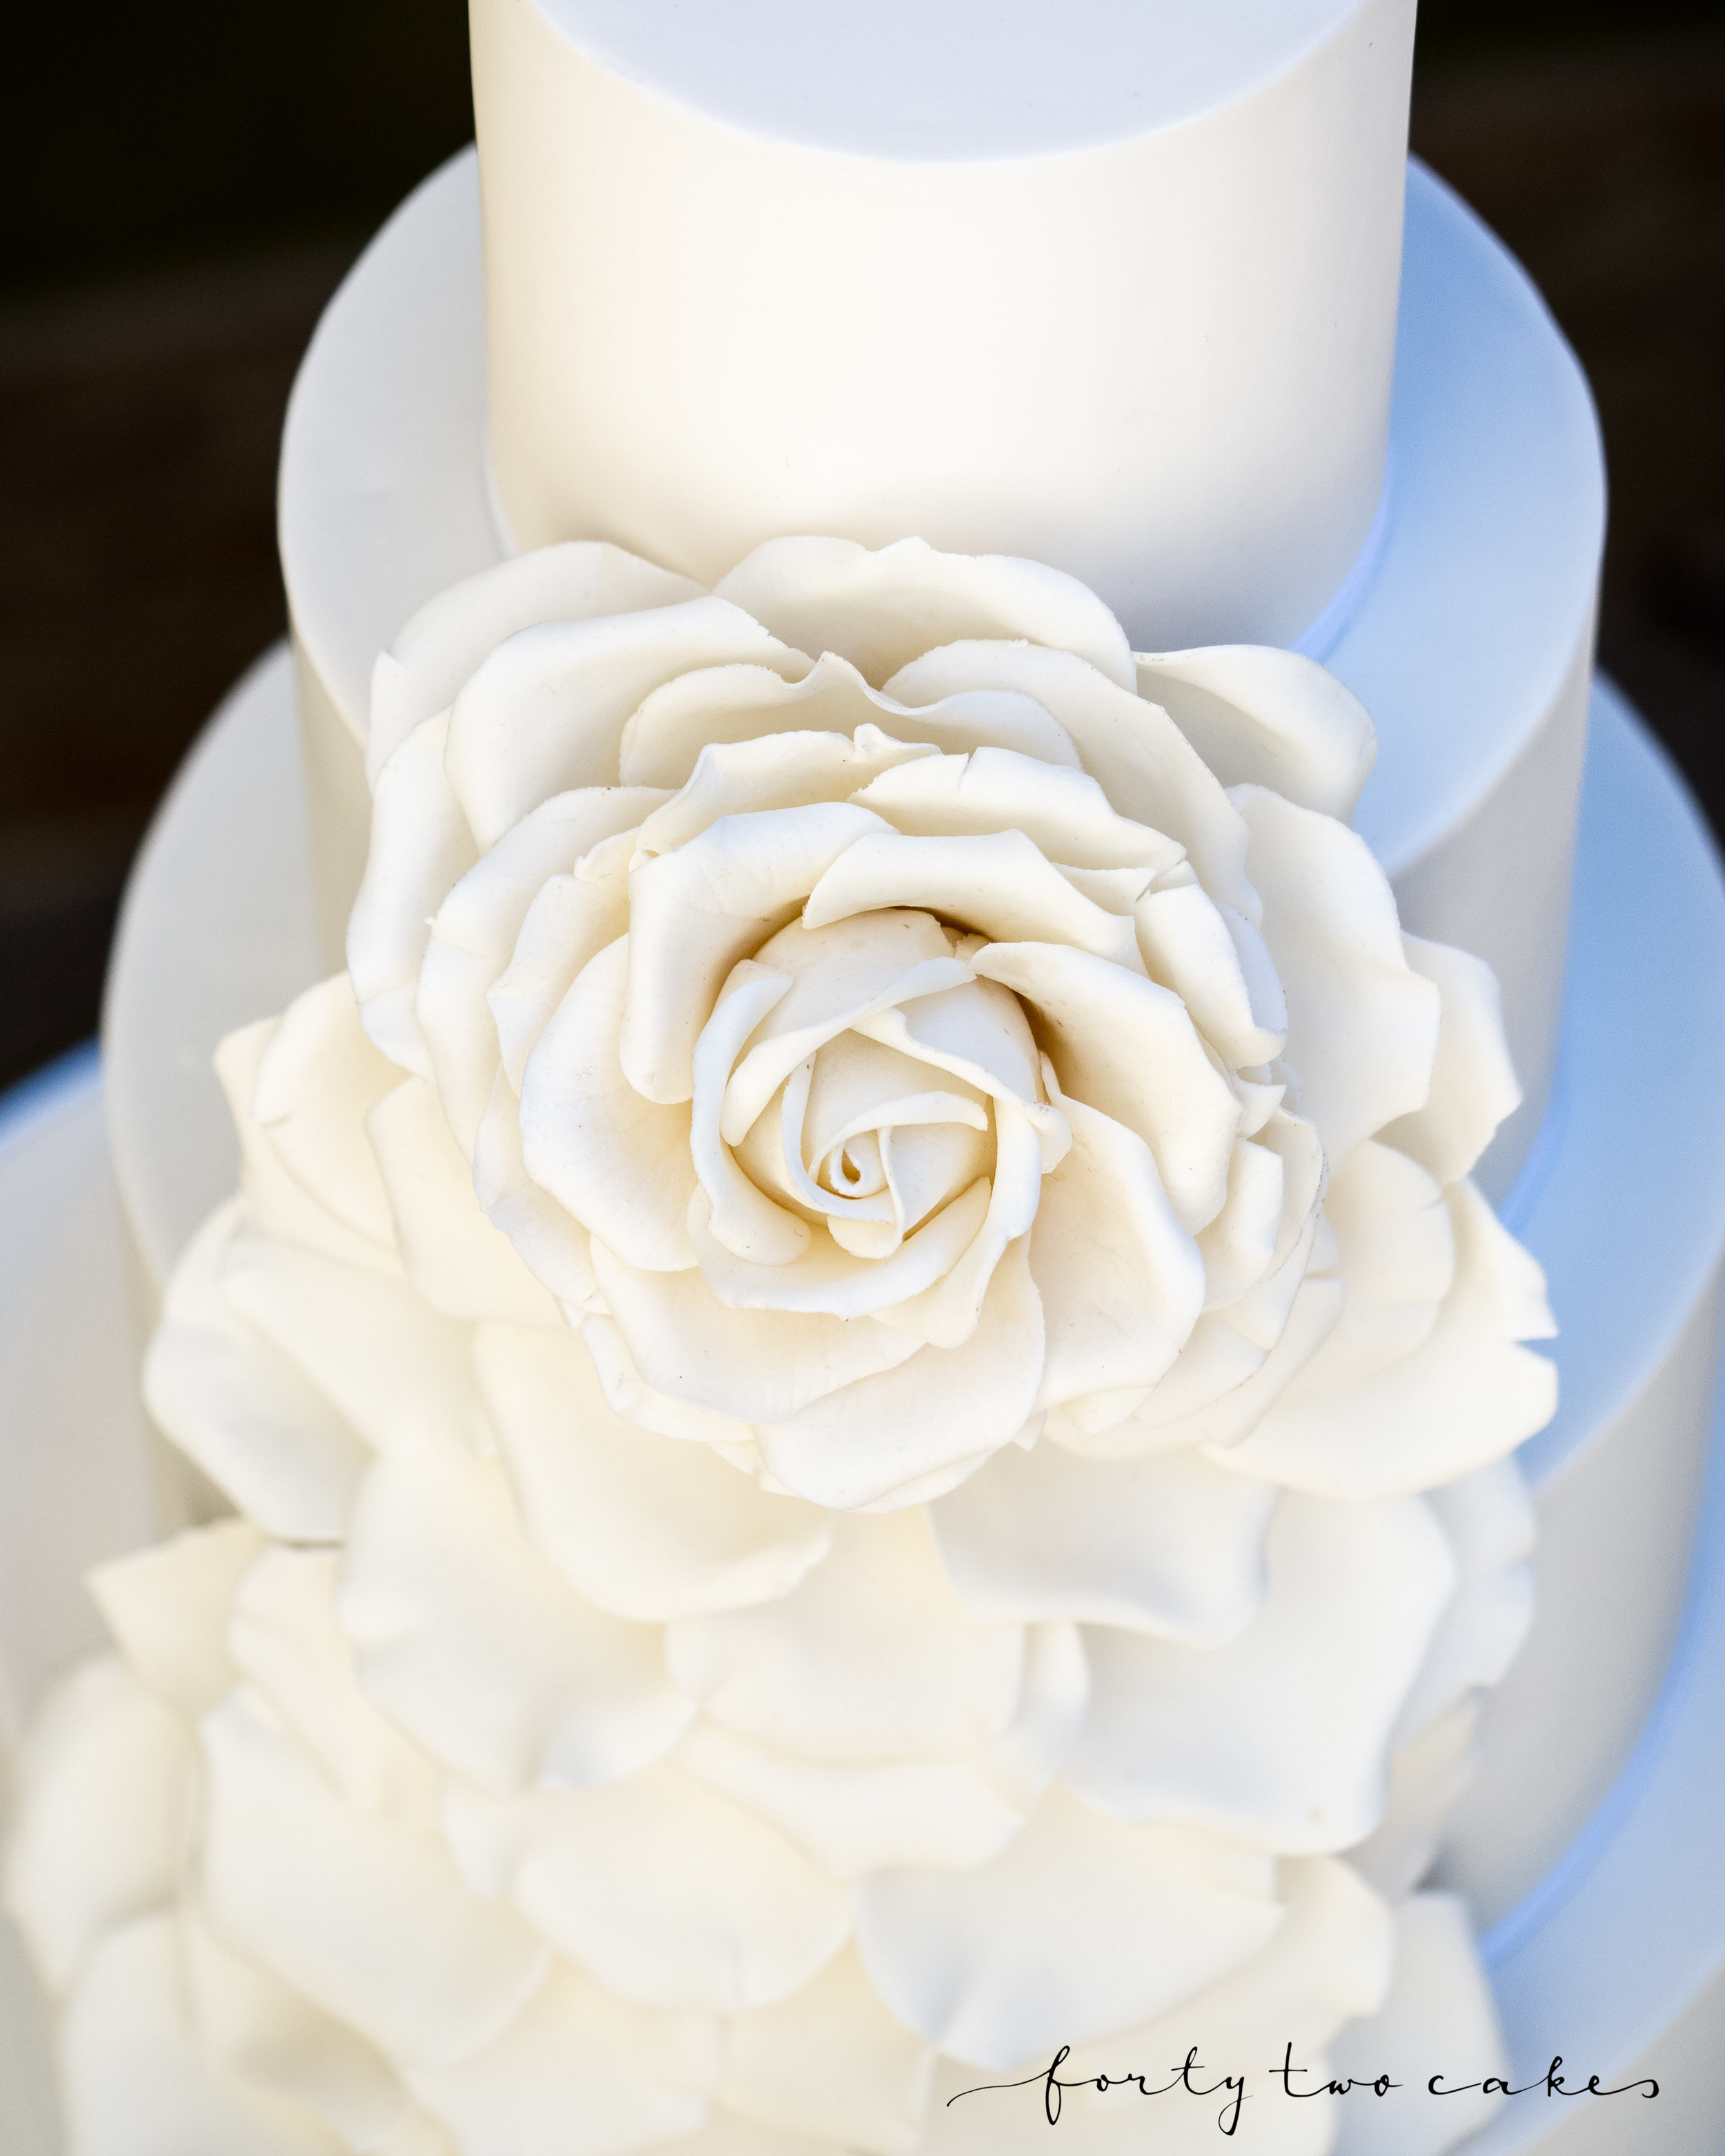 Forty-Two Cakes - Sugar Art-03-3.jpg